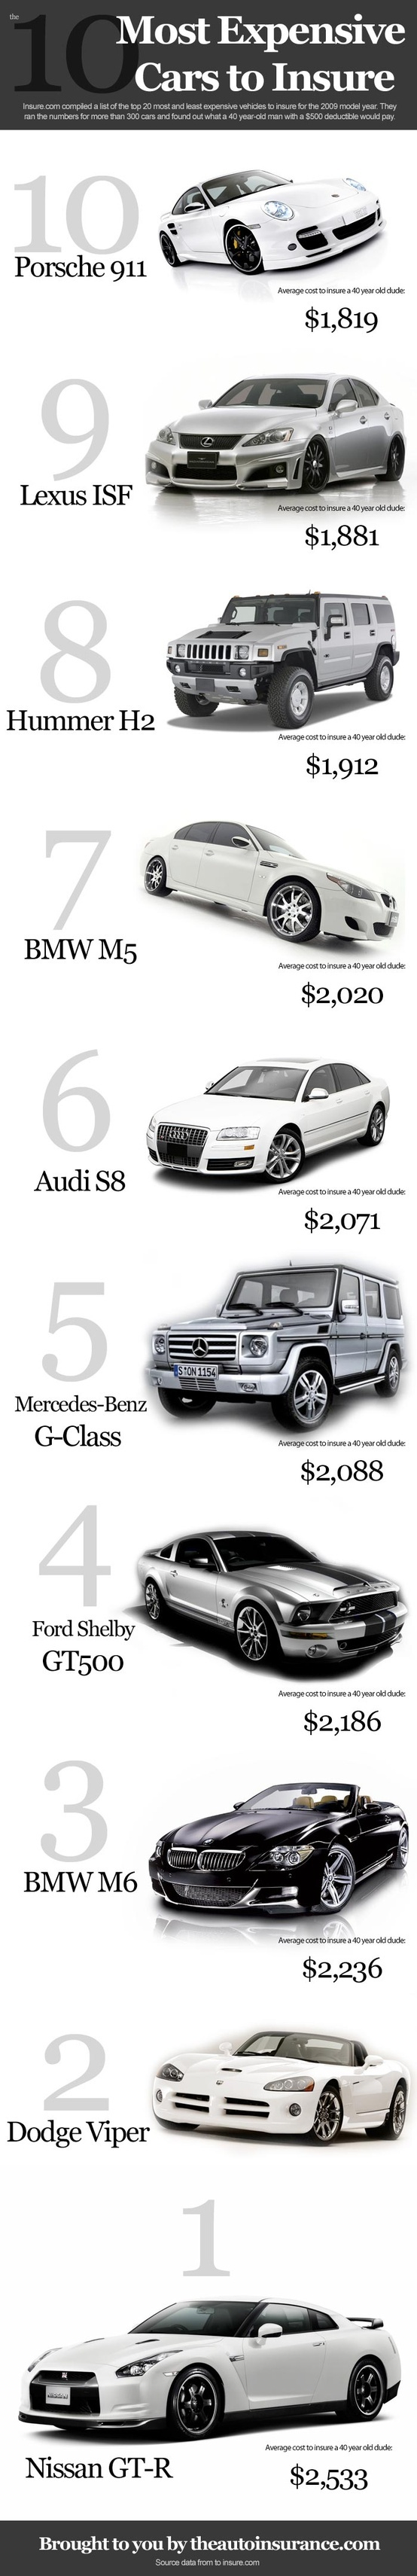 Most Expensive Luxury Cars to Insure